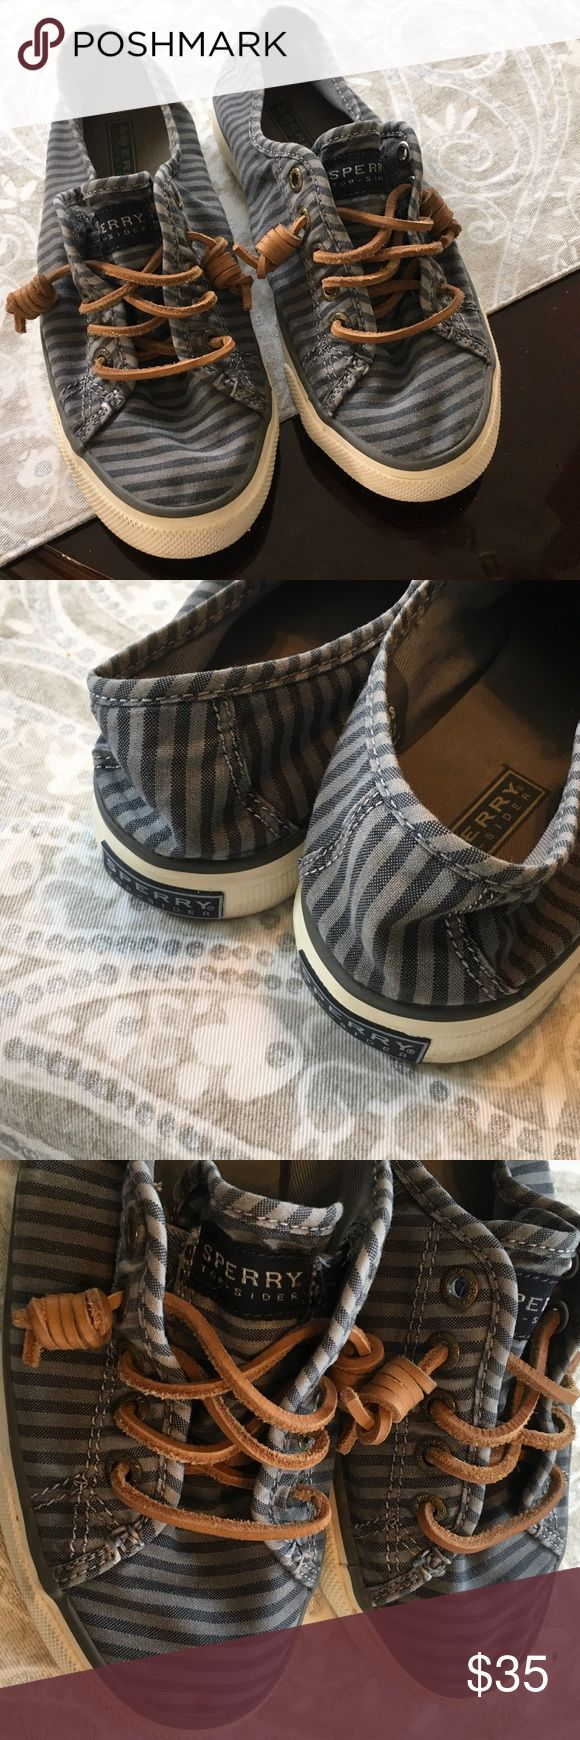 Canvas gray and black sperry Very good condition worn a few times Sperry Top-Sider Shoes Flats & Loafers